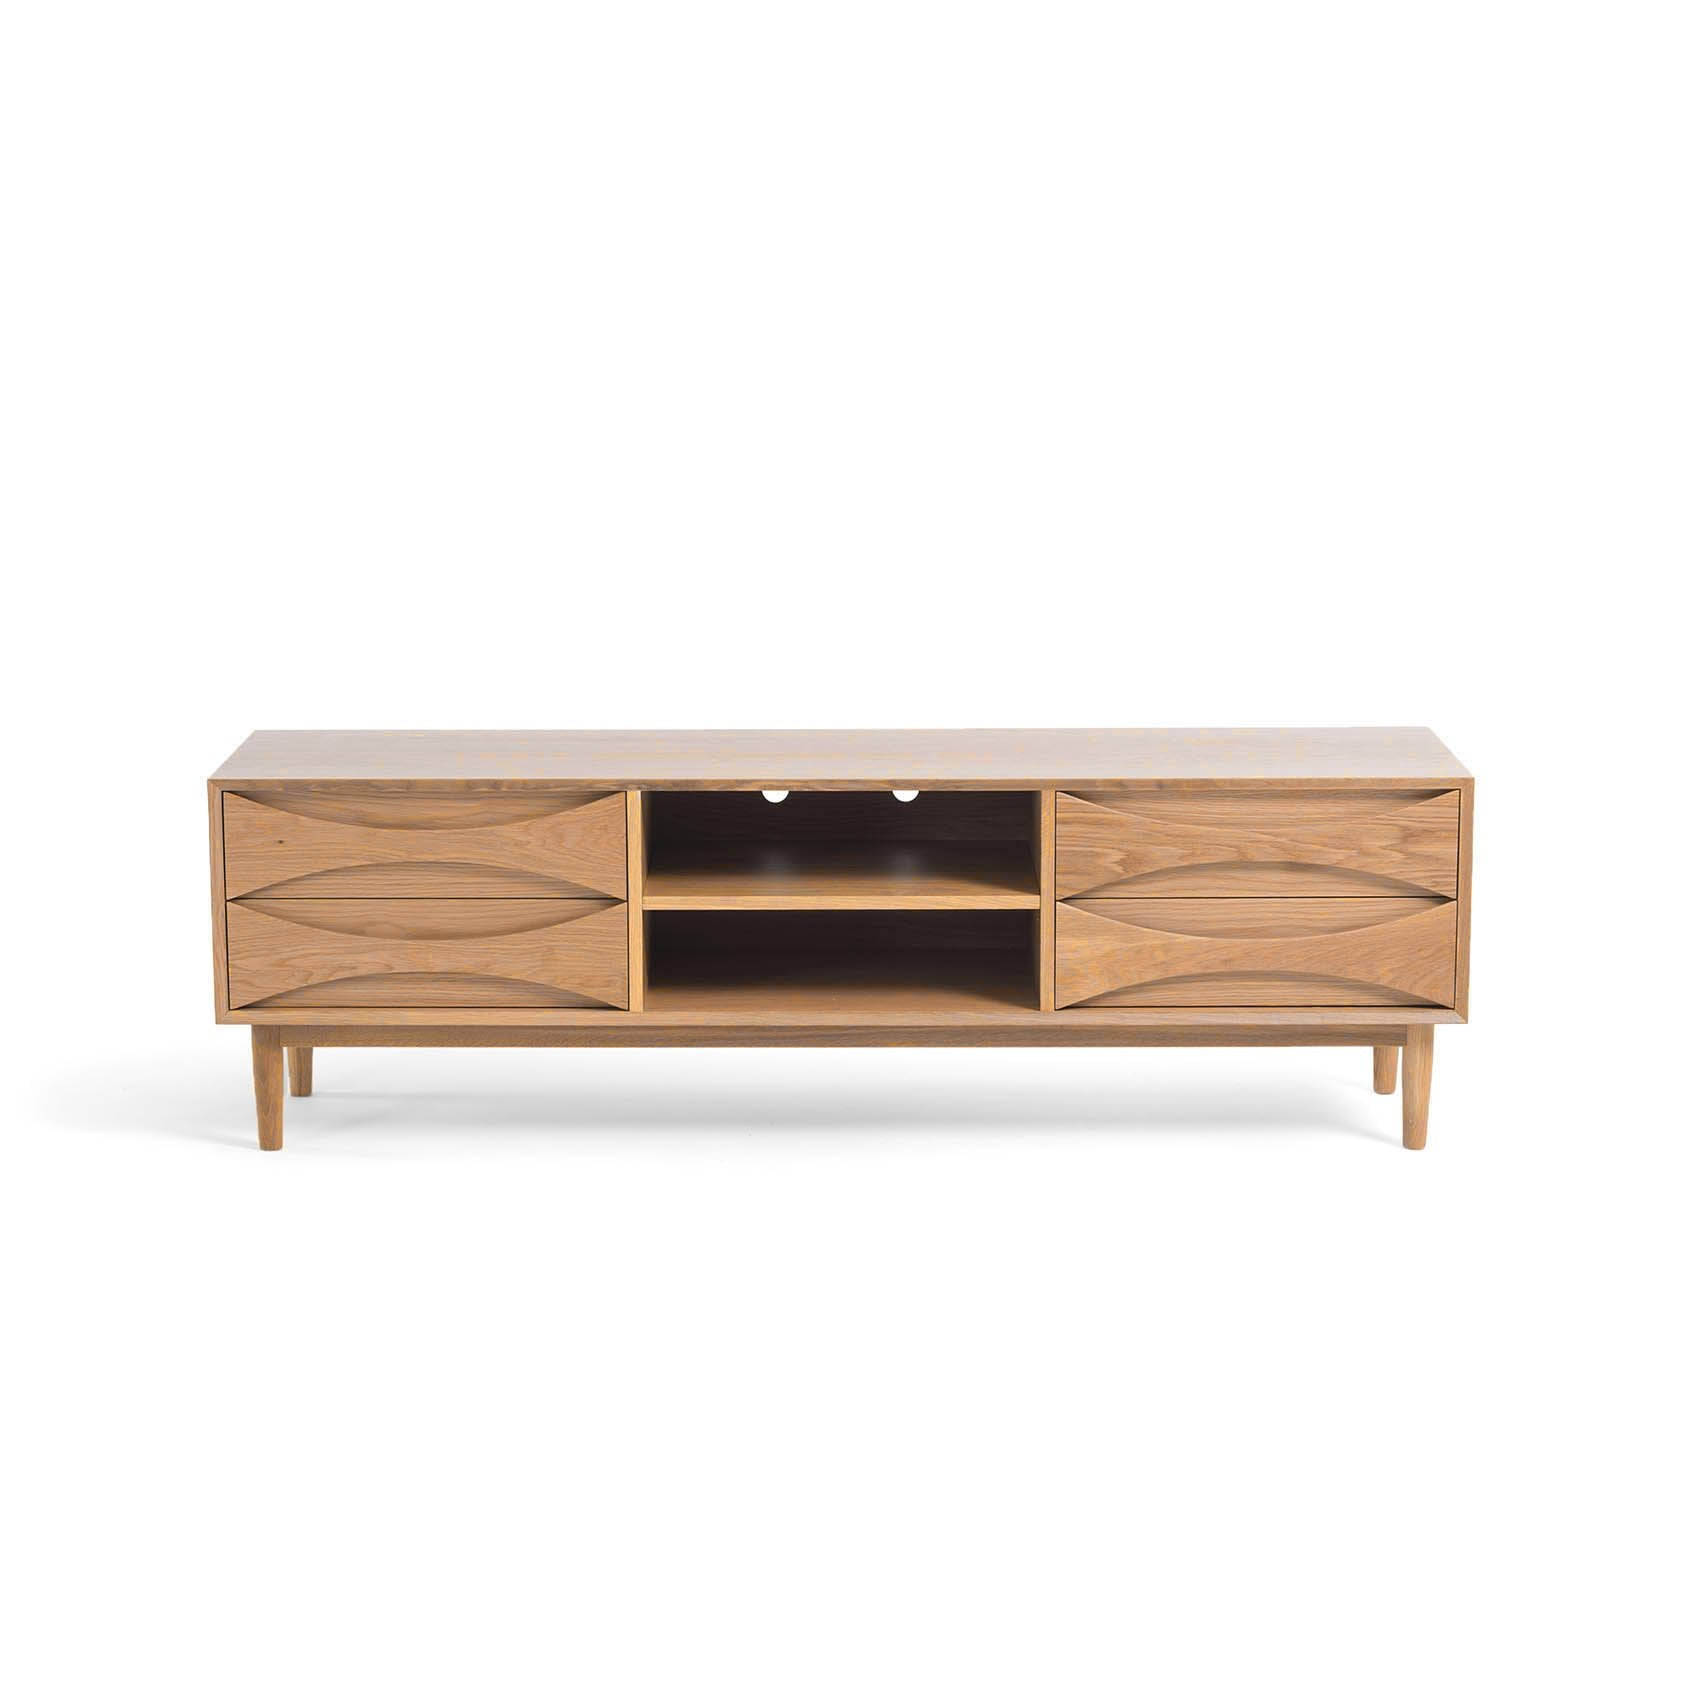 [FES3205OAKB] Beleven Console